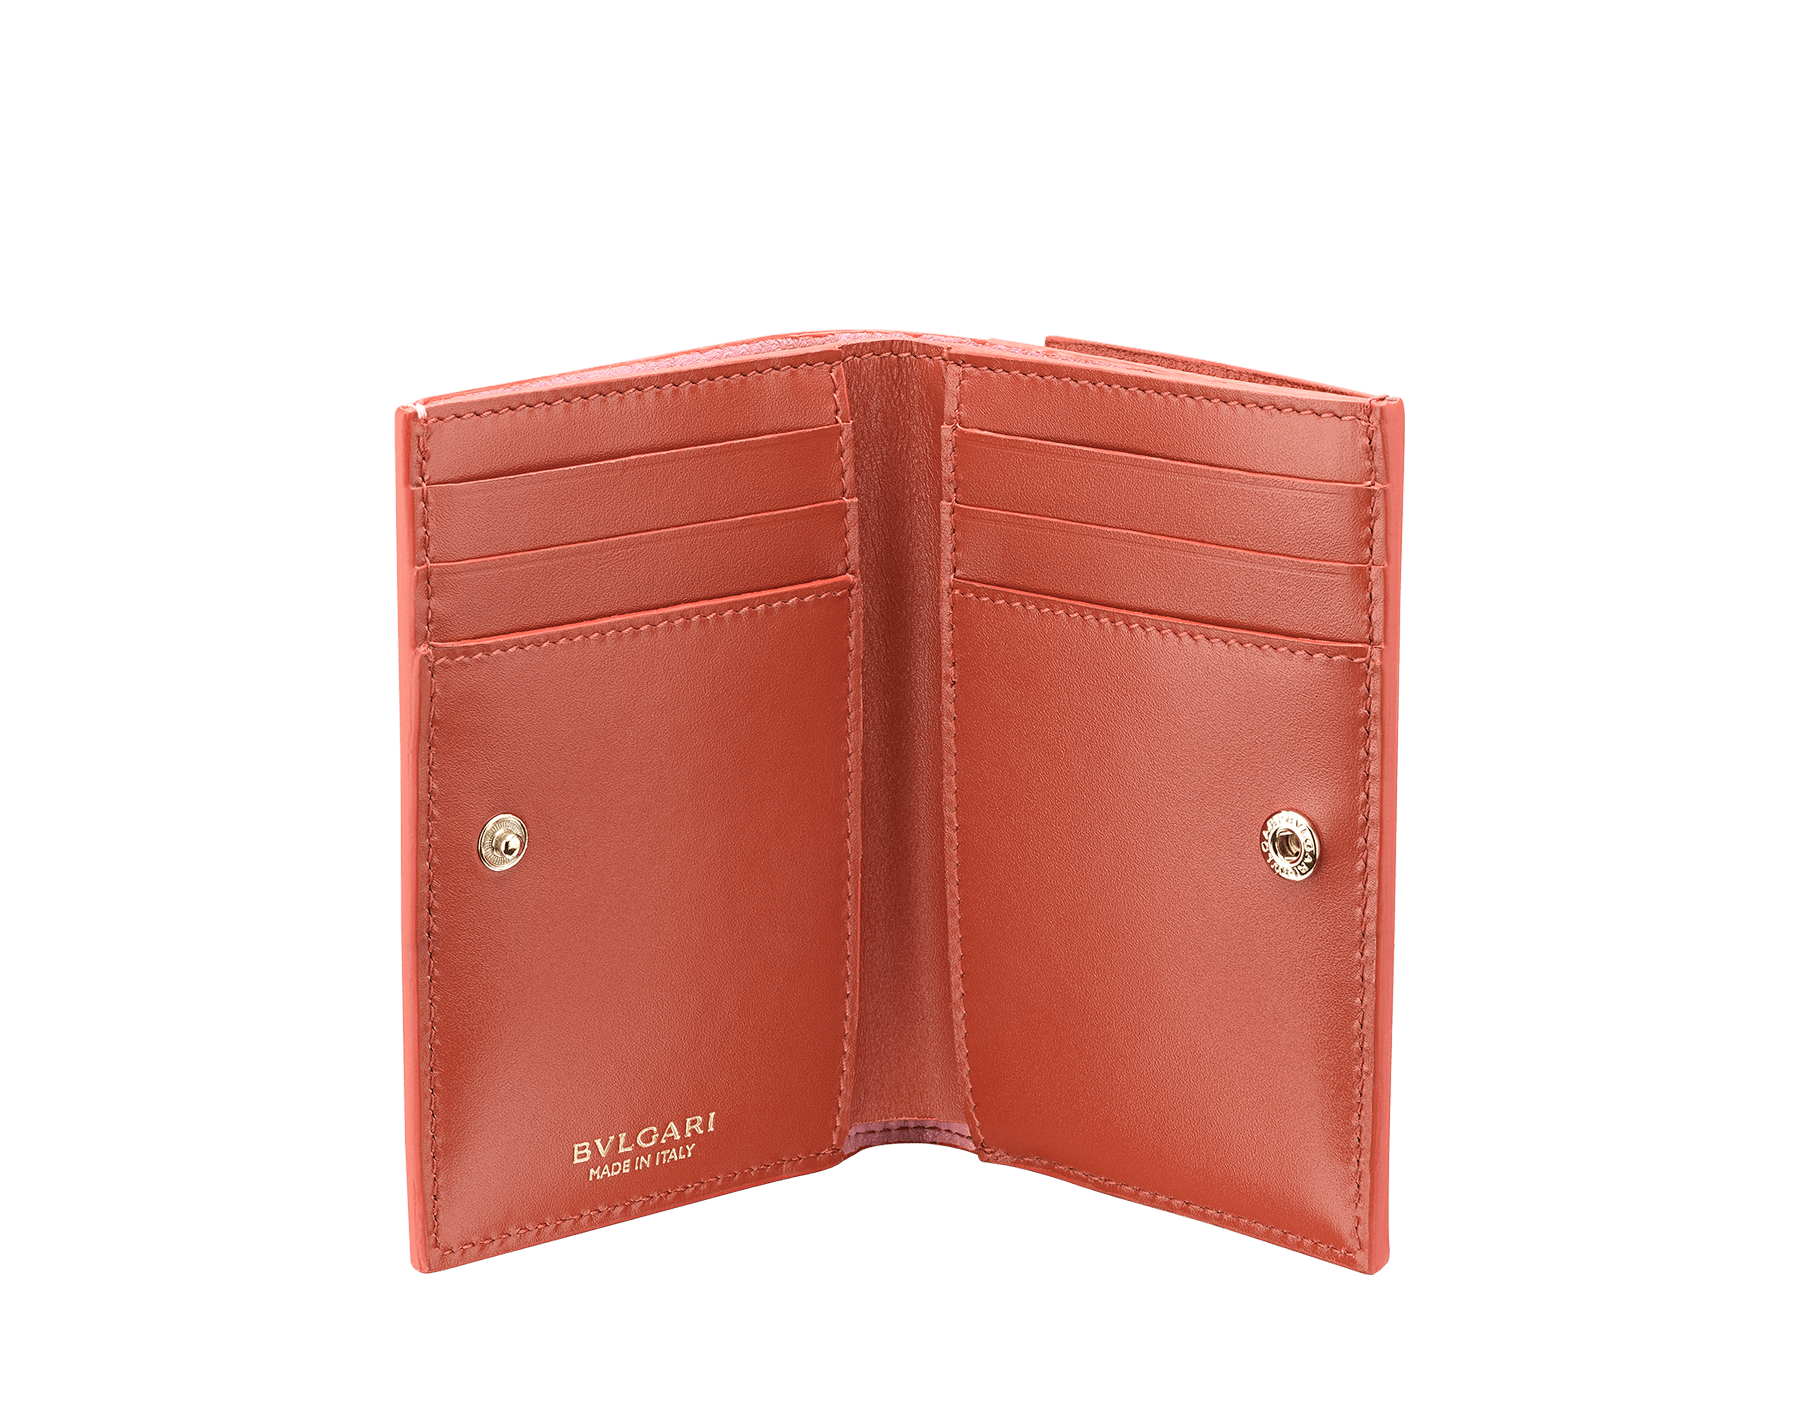 B.zero1 double folded credit card holder in rosa di francia and imperial topaz goatskin. Iconic B.zero1 charm in light gold plated brass. 289086 image 2